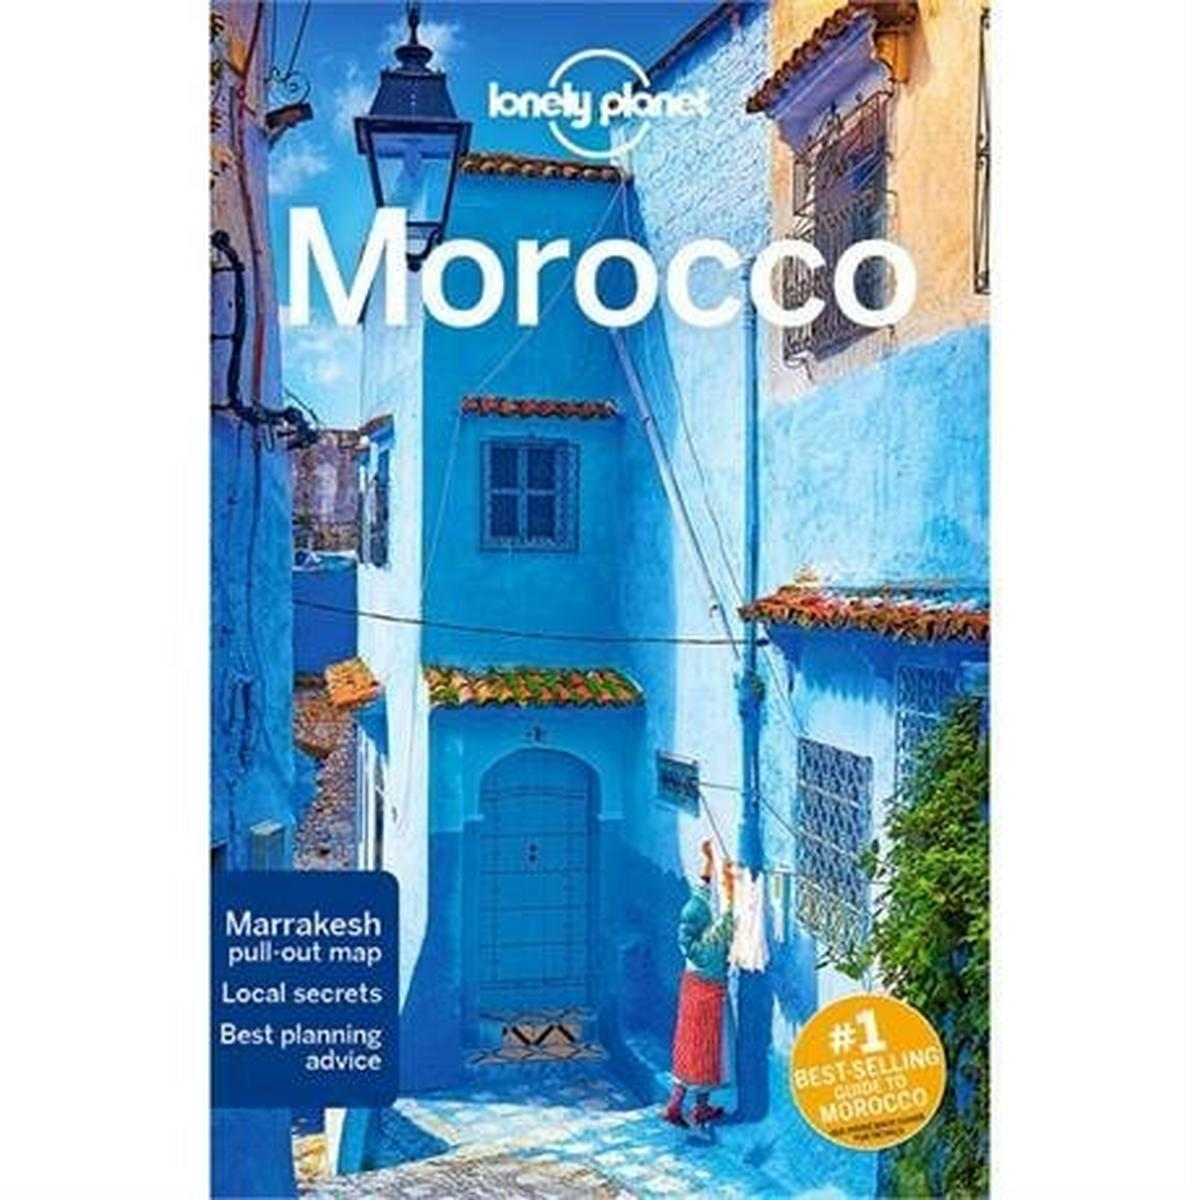 Lonely Planet Travel Guide Book: Morocco (12th Edition)